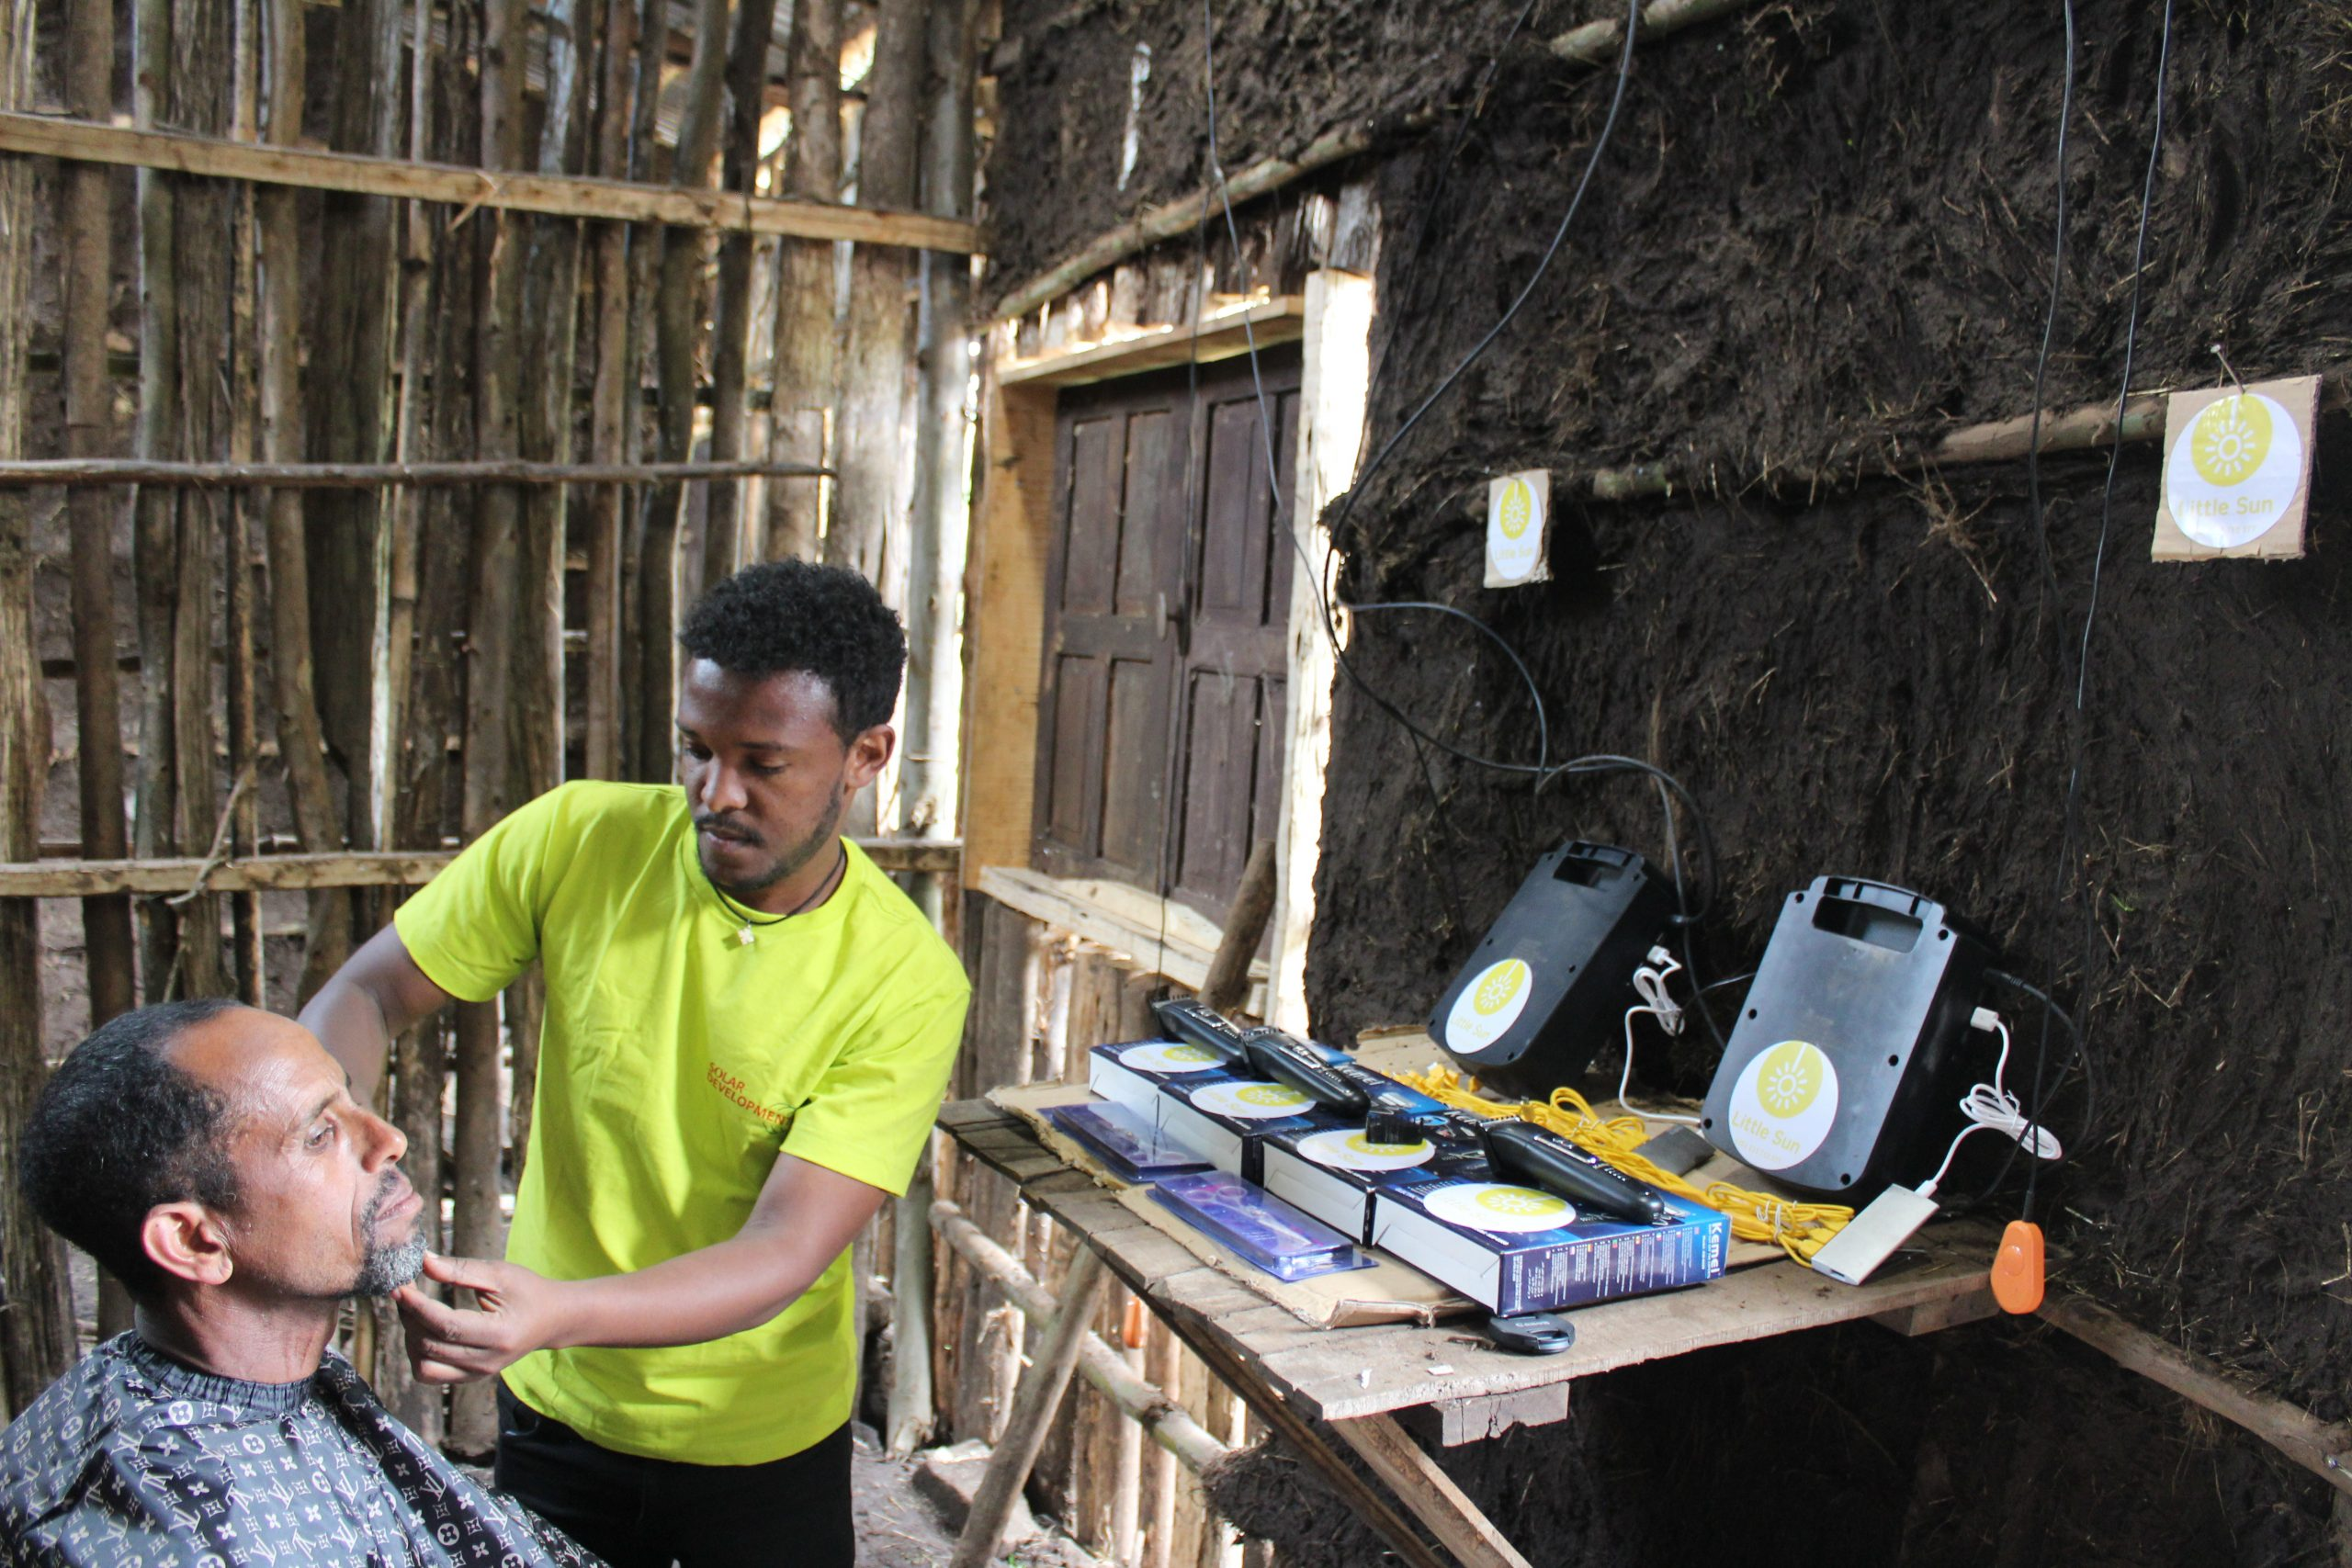 Little Sun solar products are being used for health, education and food security reasons